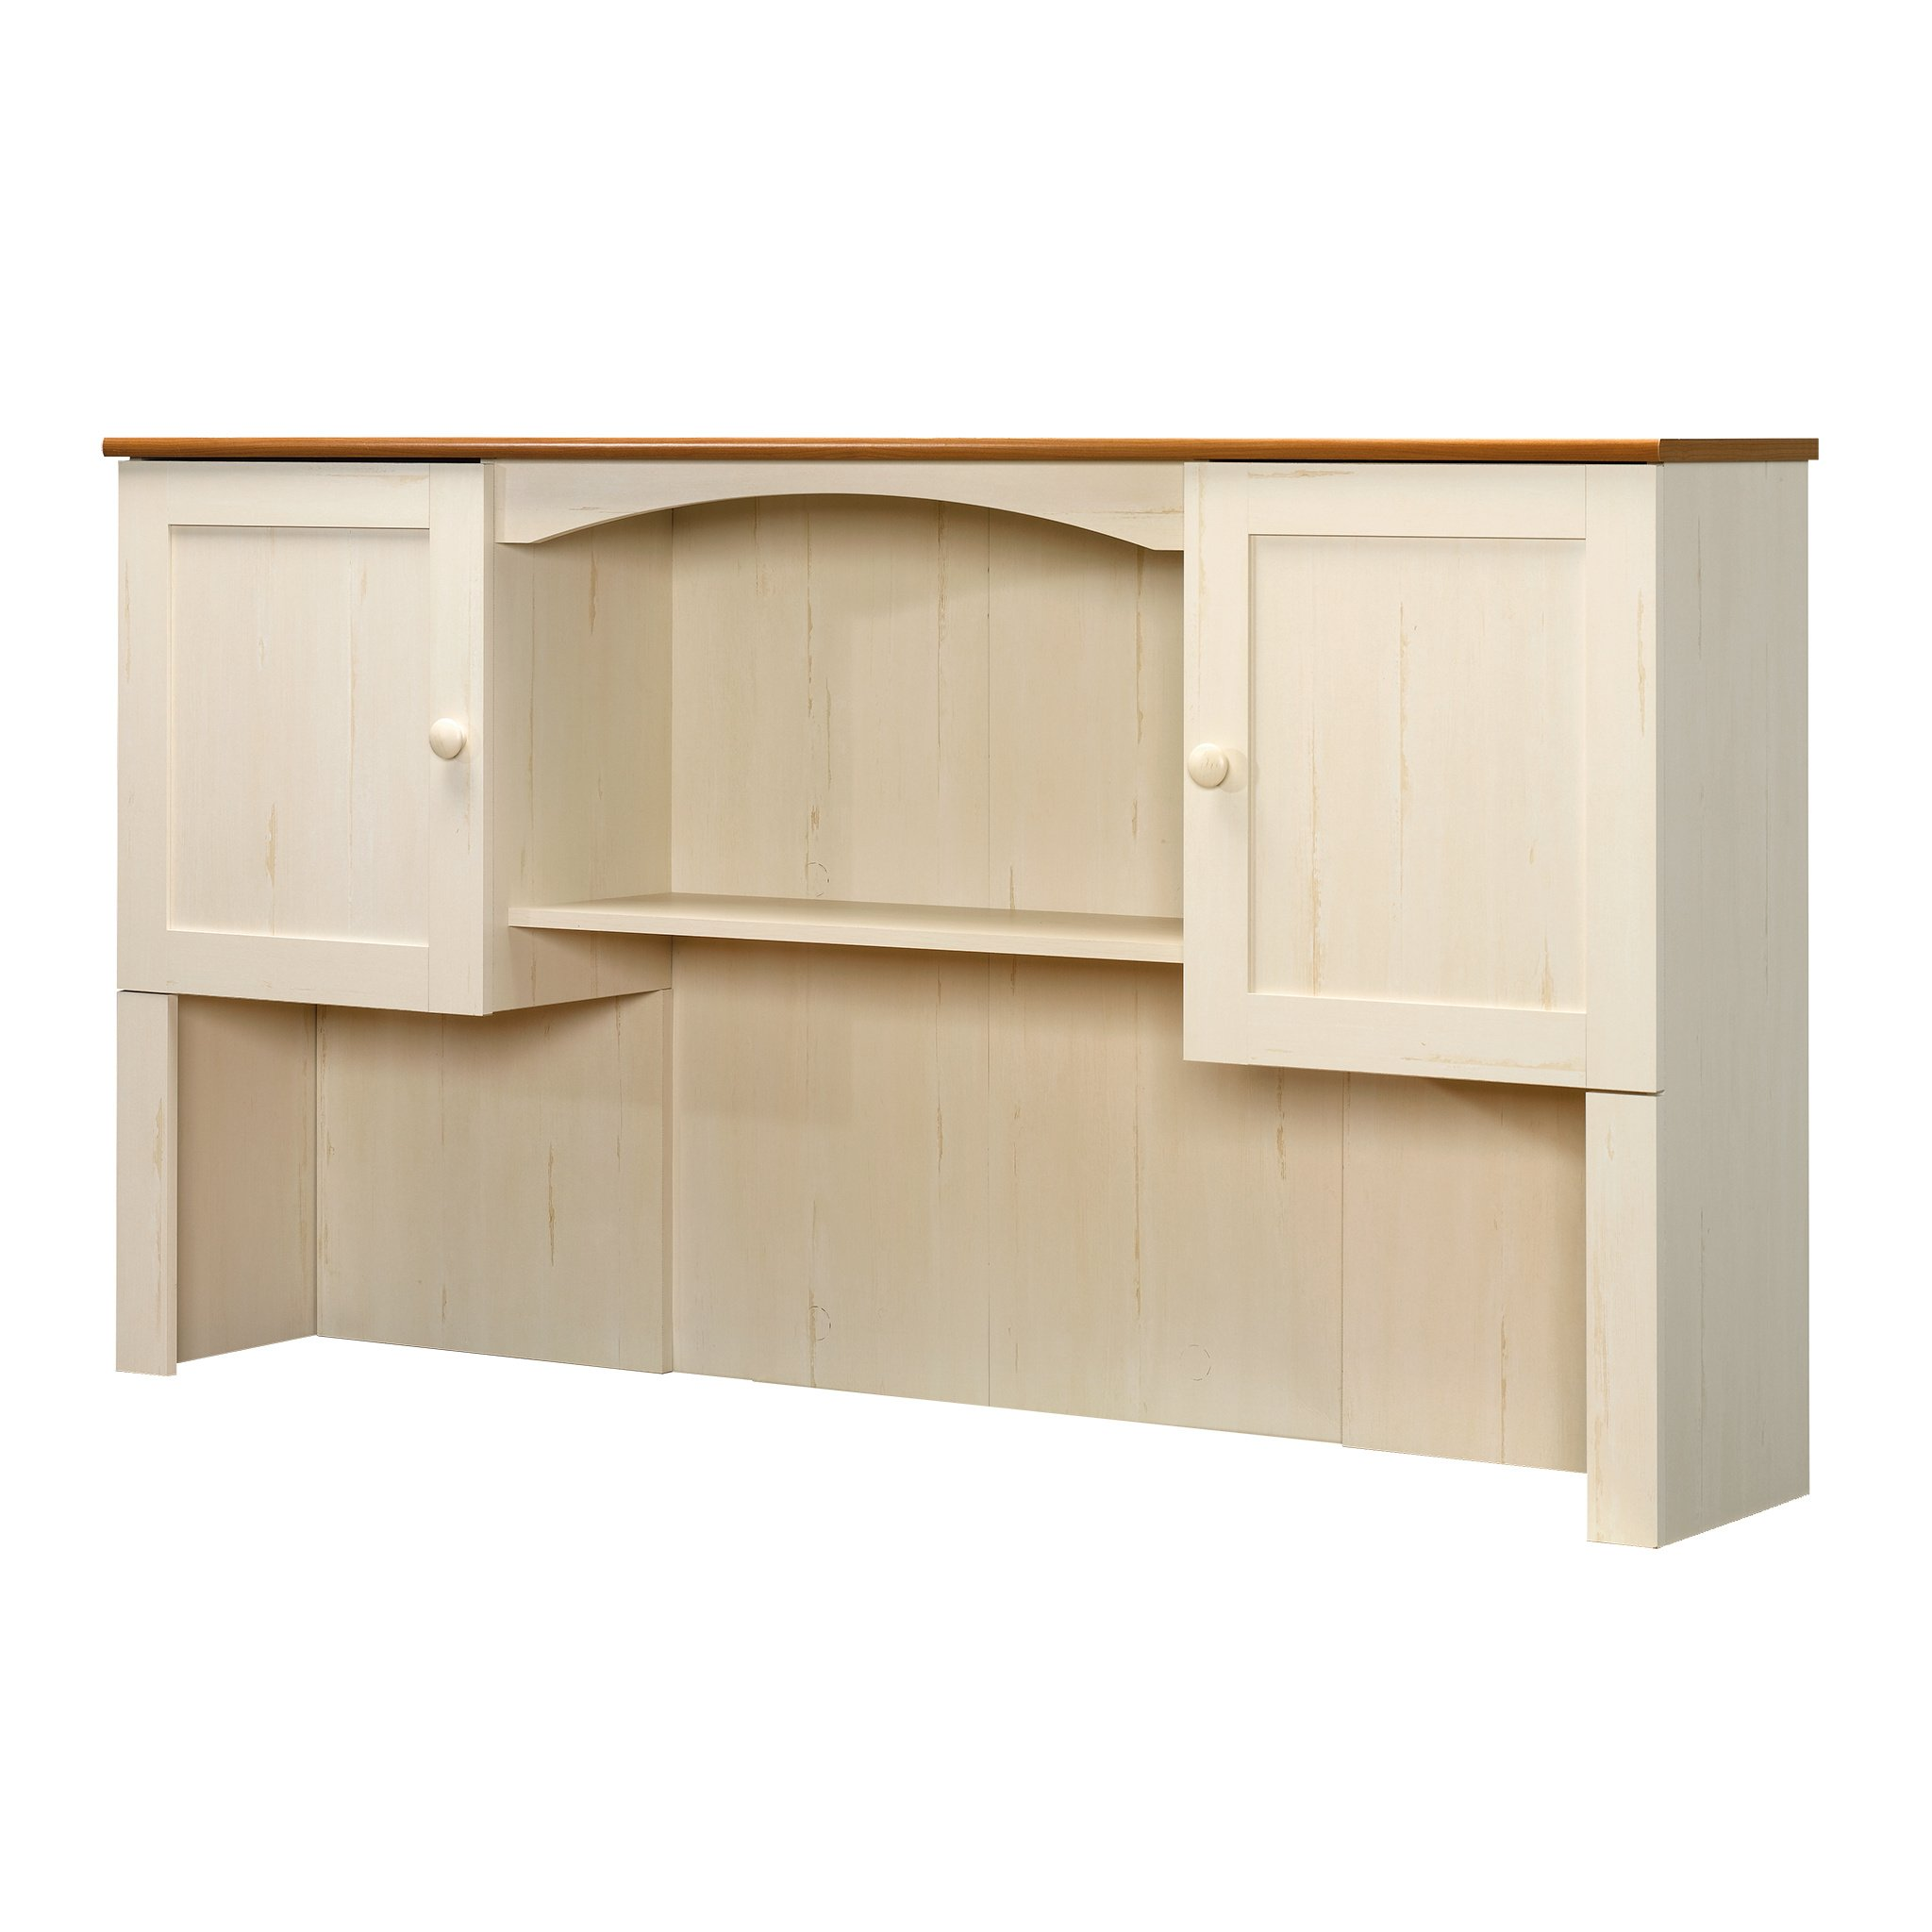 Sauder Harbor View Hutch (desk not included) in Antiqued White